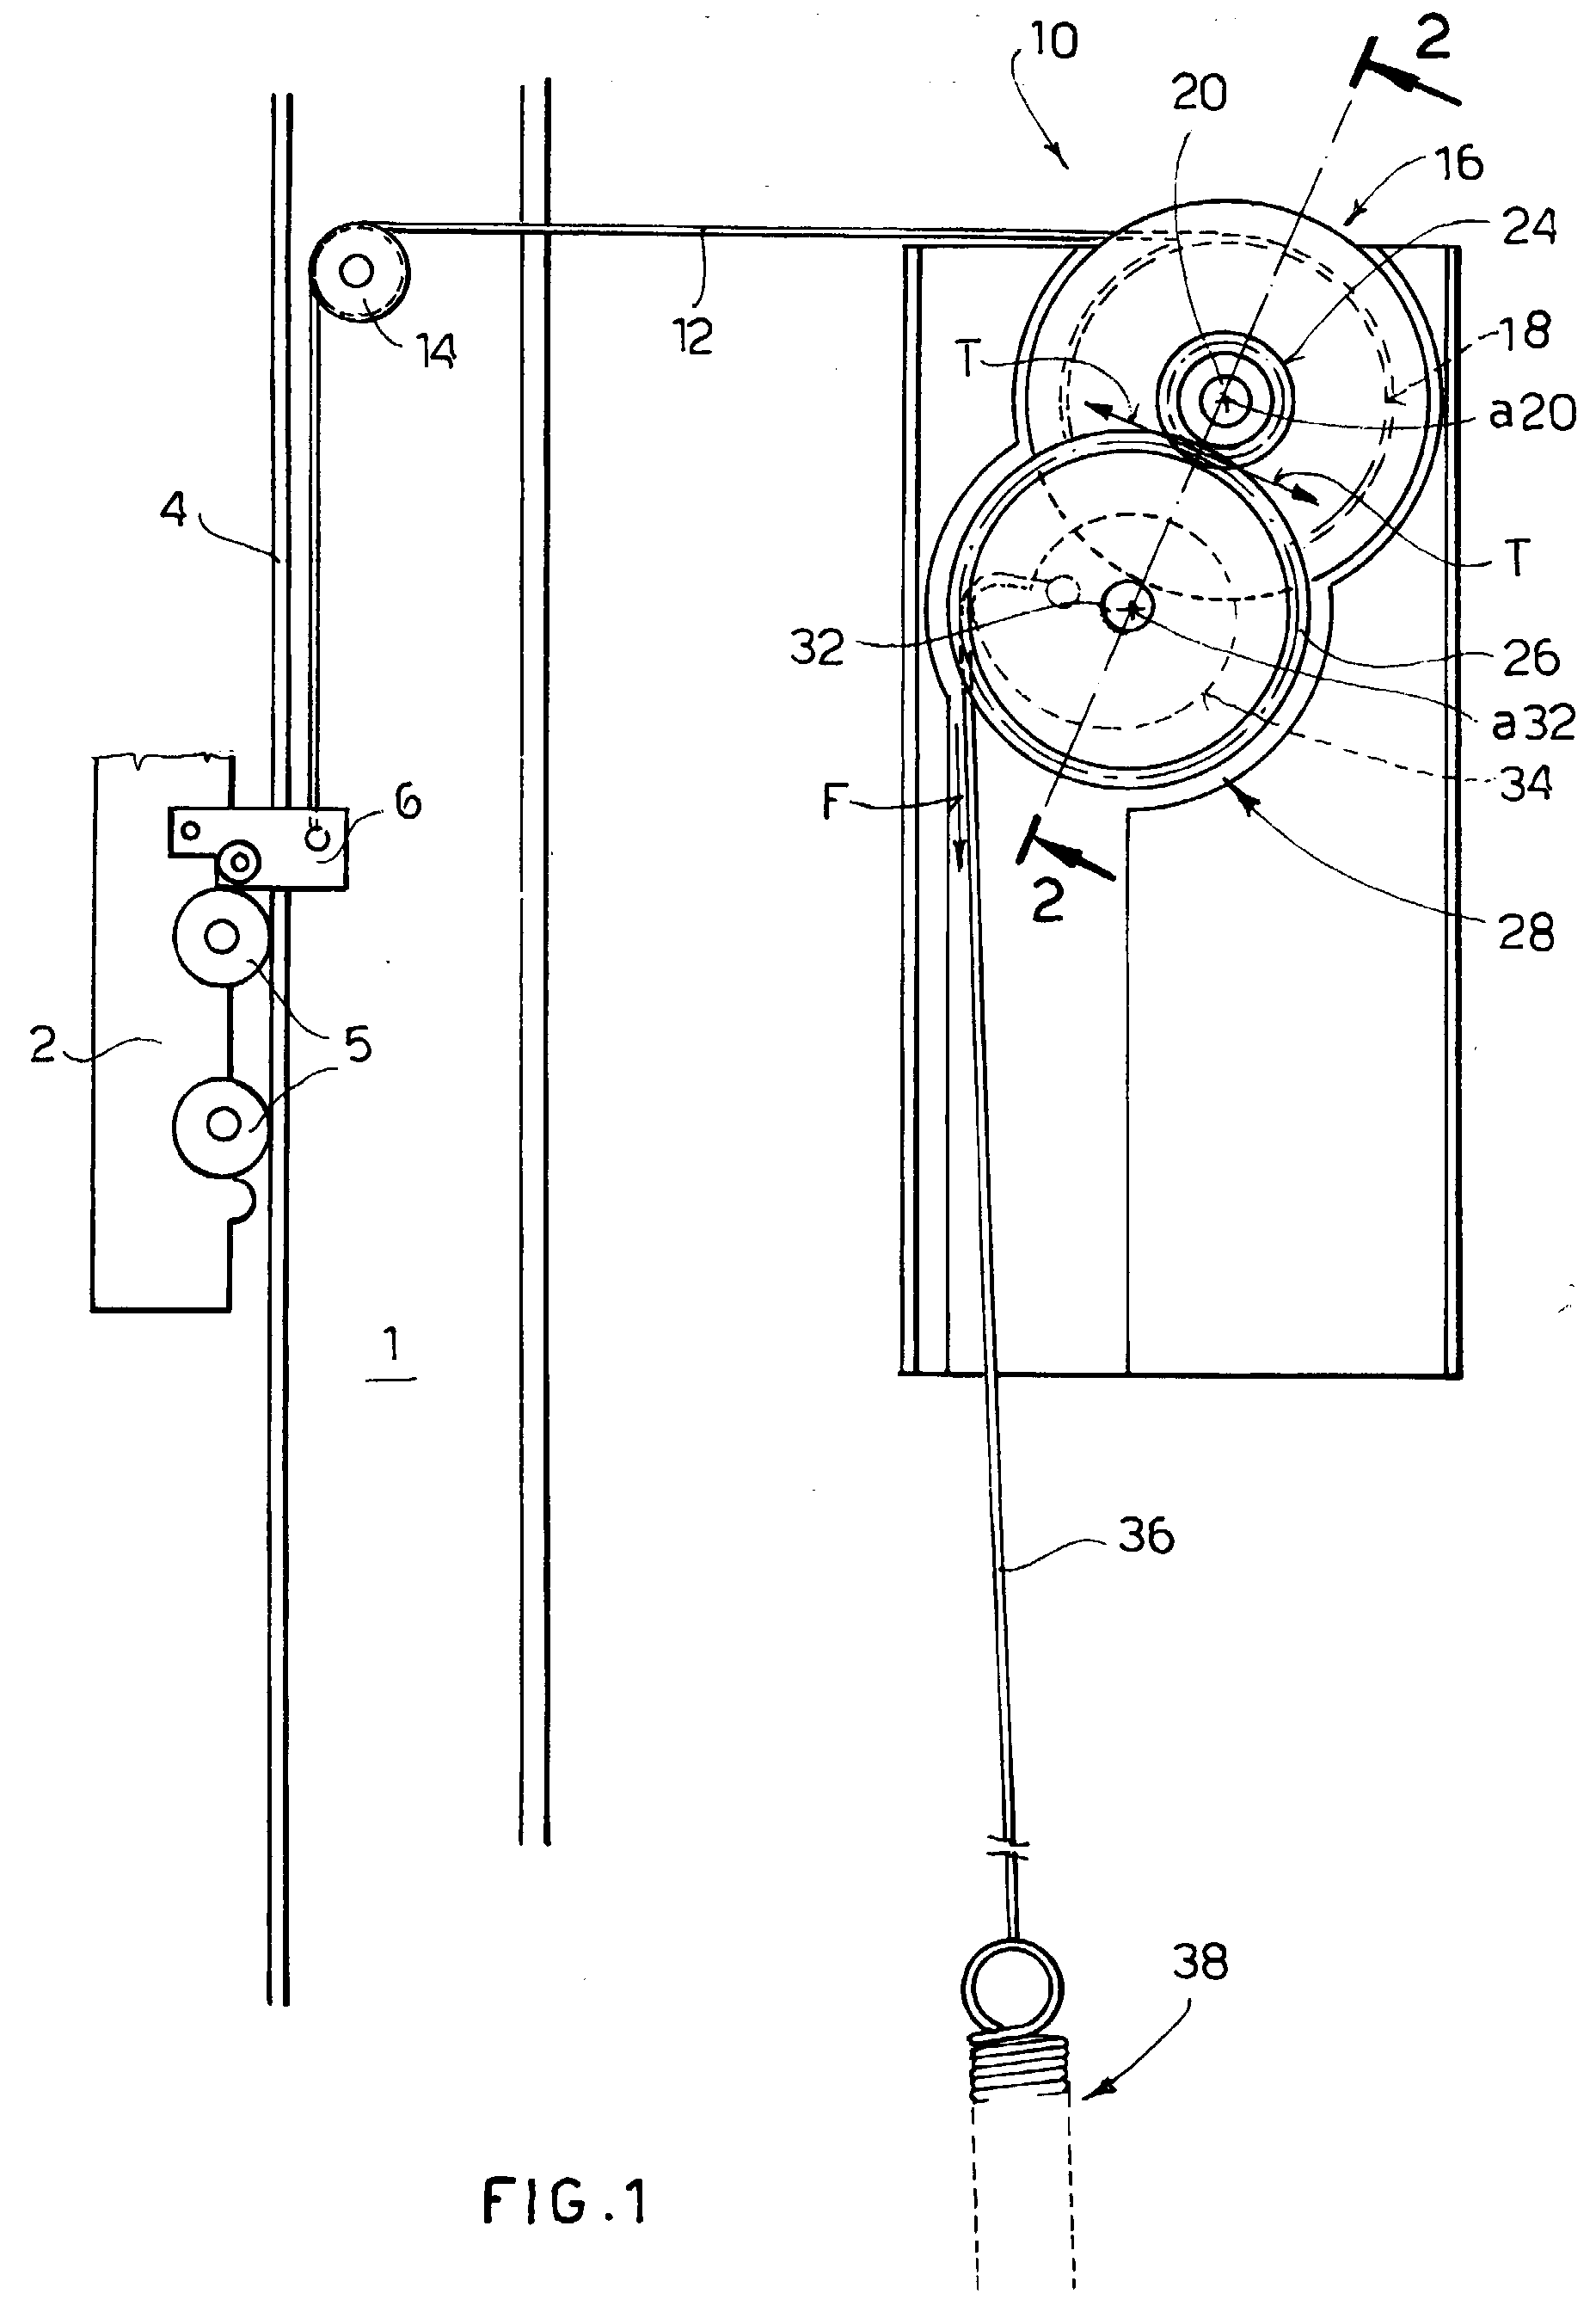 Patent ep1074686a2 a movement and balancing mechanism for Sliding door mechanism